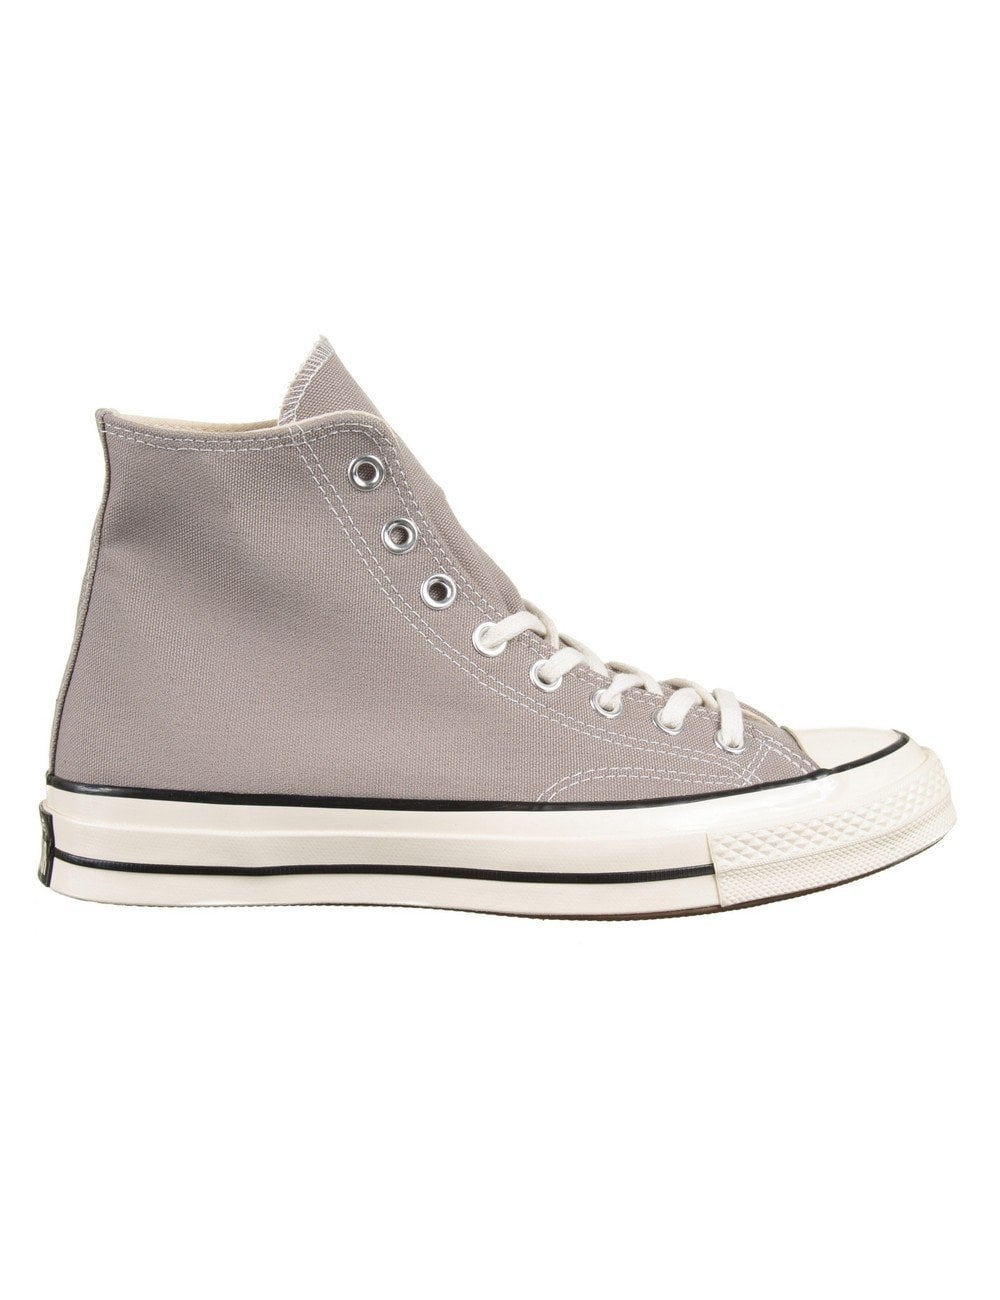 7a0d7fe7ee3050 Converse Chuck Taylor 70s Hi Boots - Wild Dove - Footwear from Fat ...